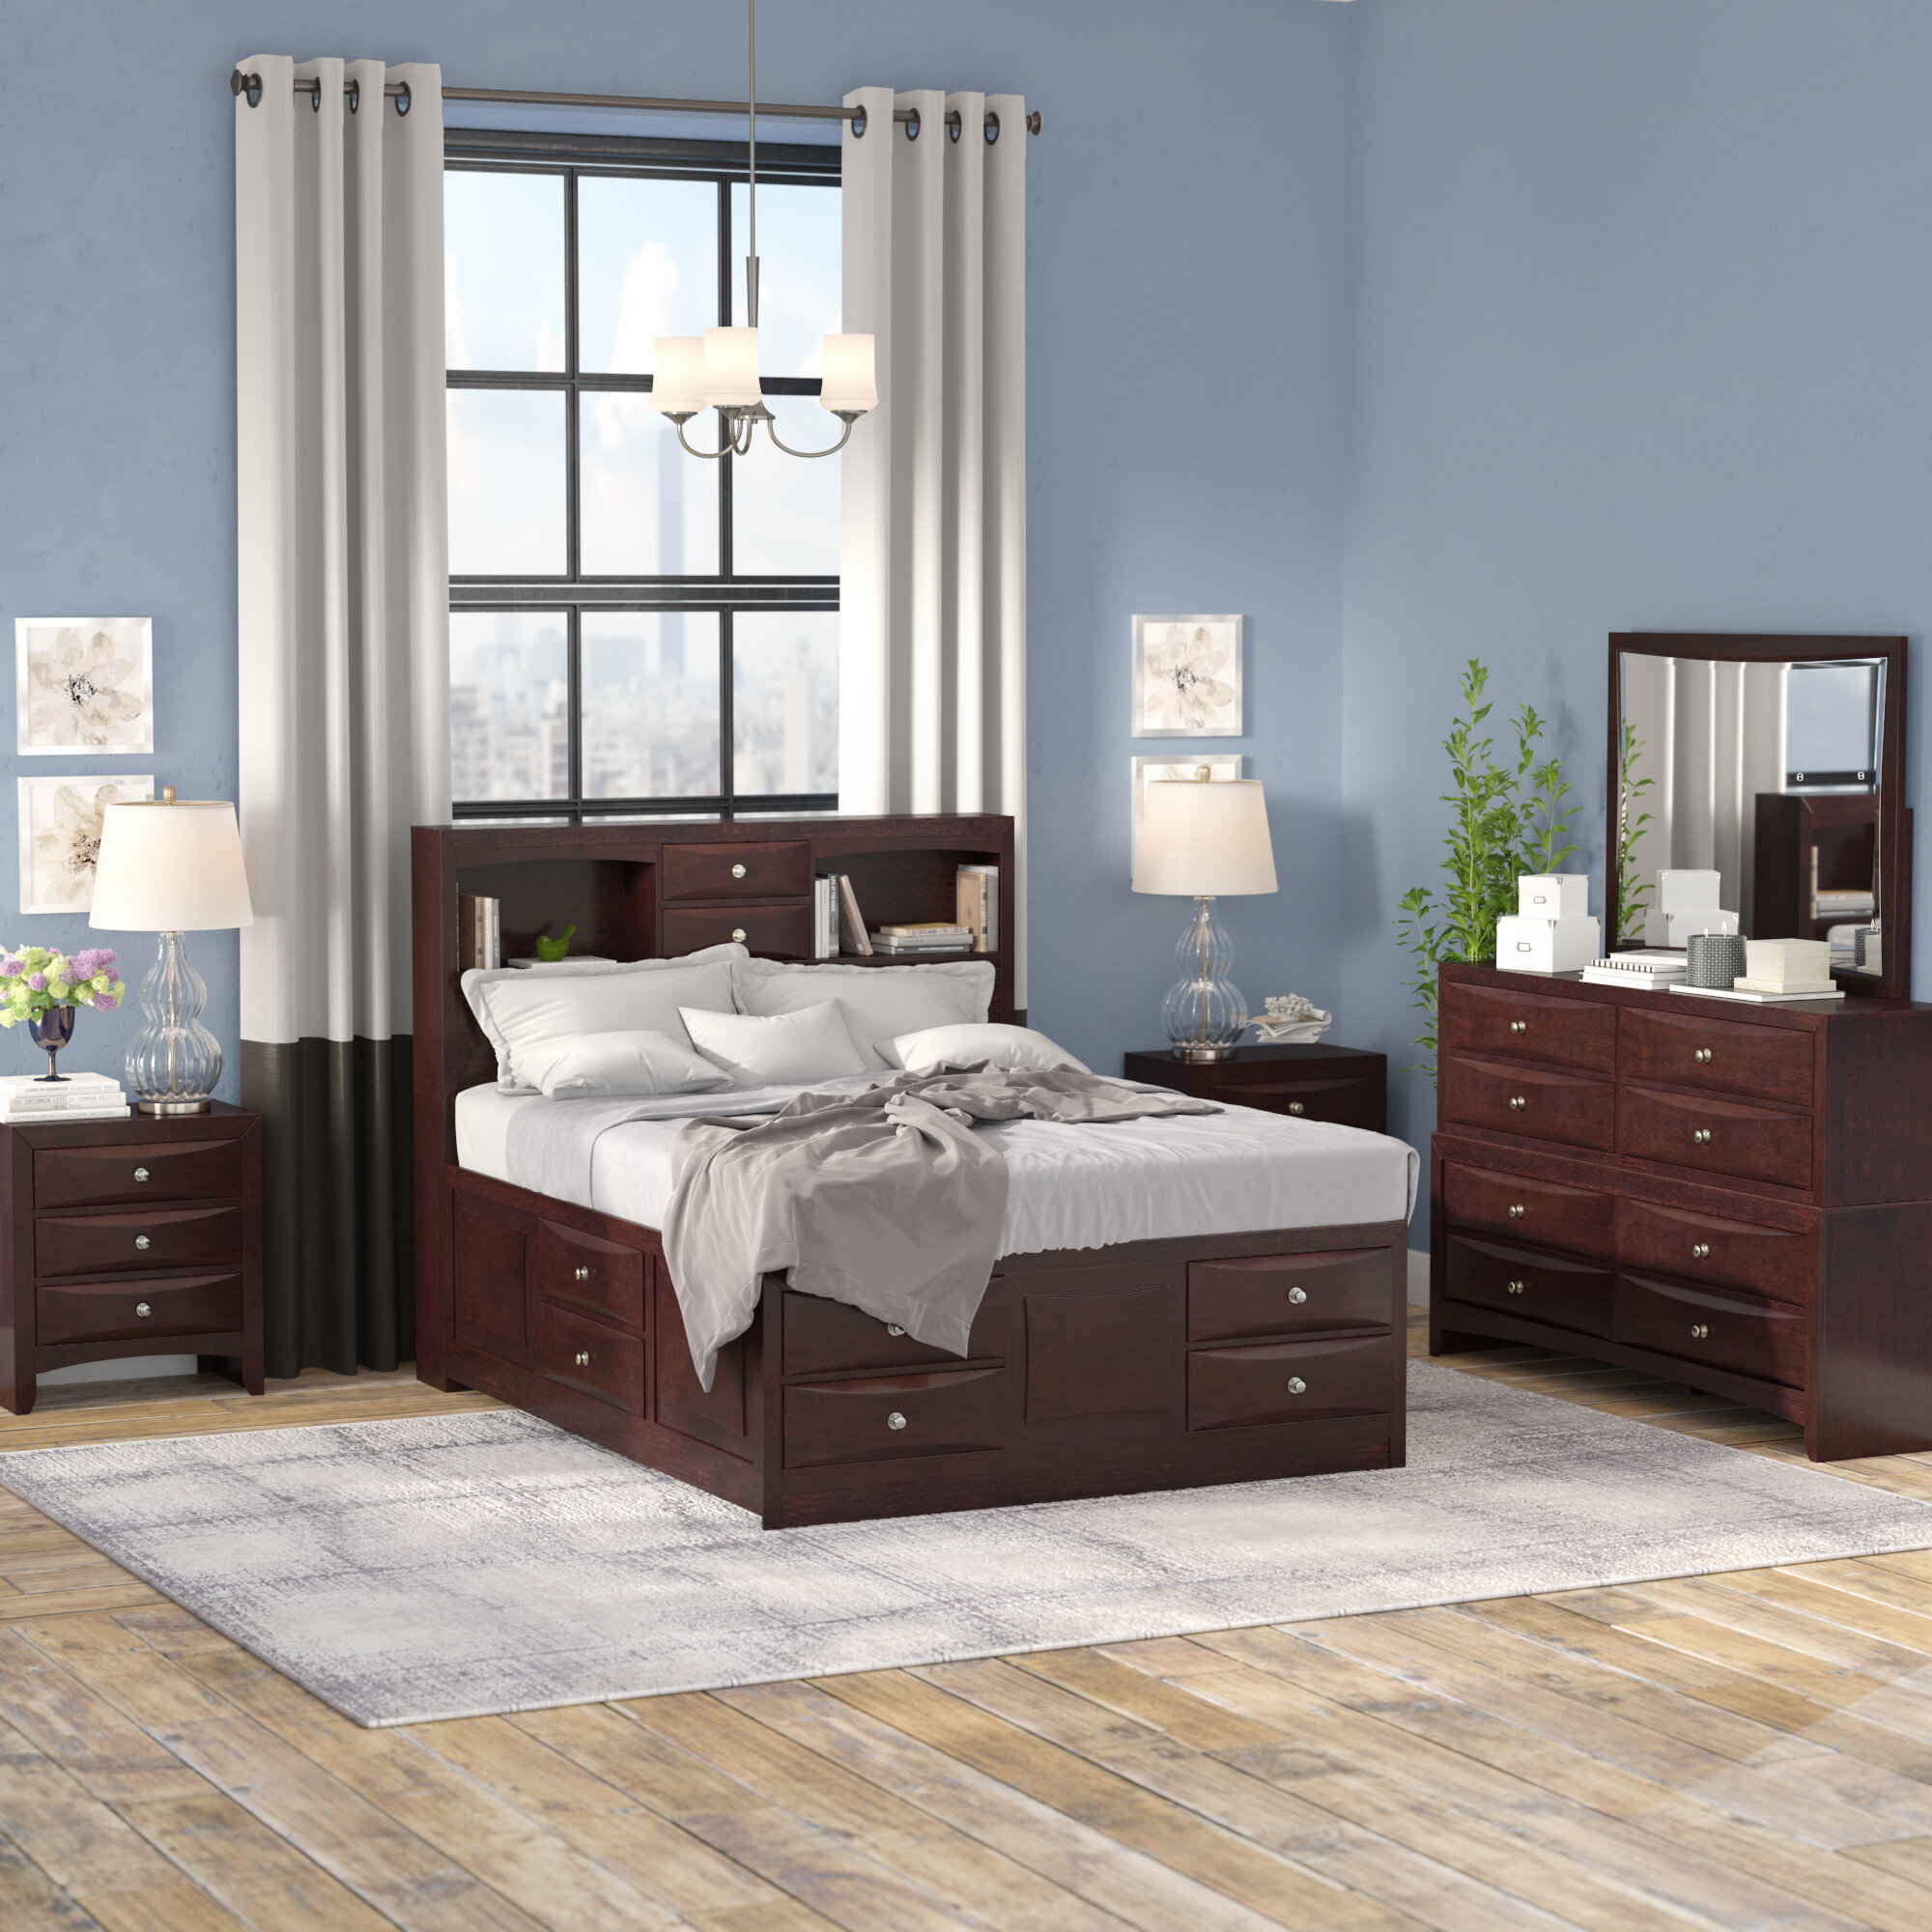 Espresso Bedroom Furniture